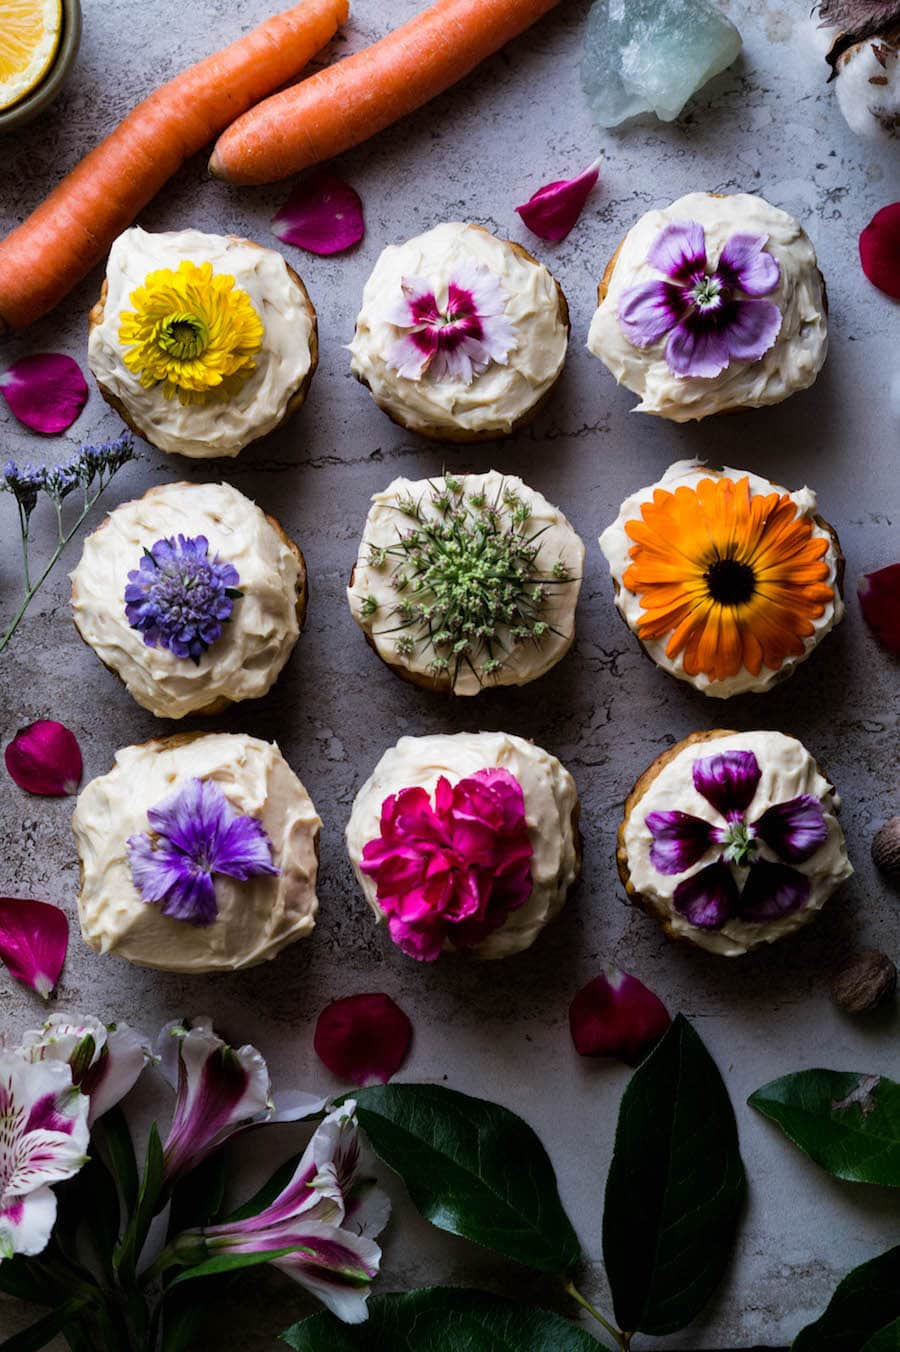 Carrot Cake Muffins with Floral Lemon Frosting